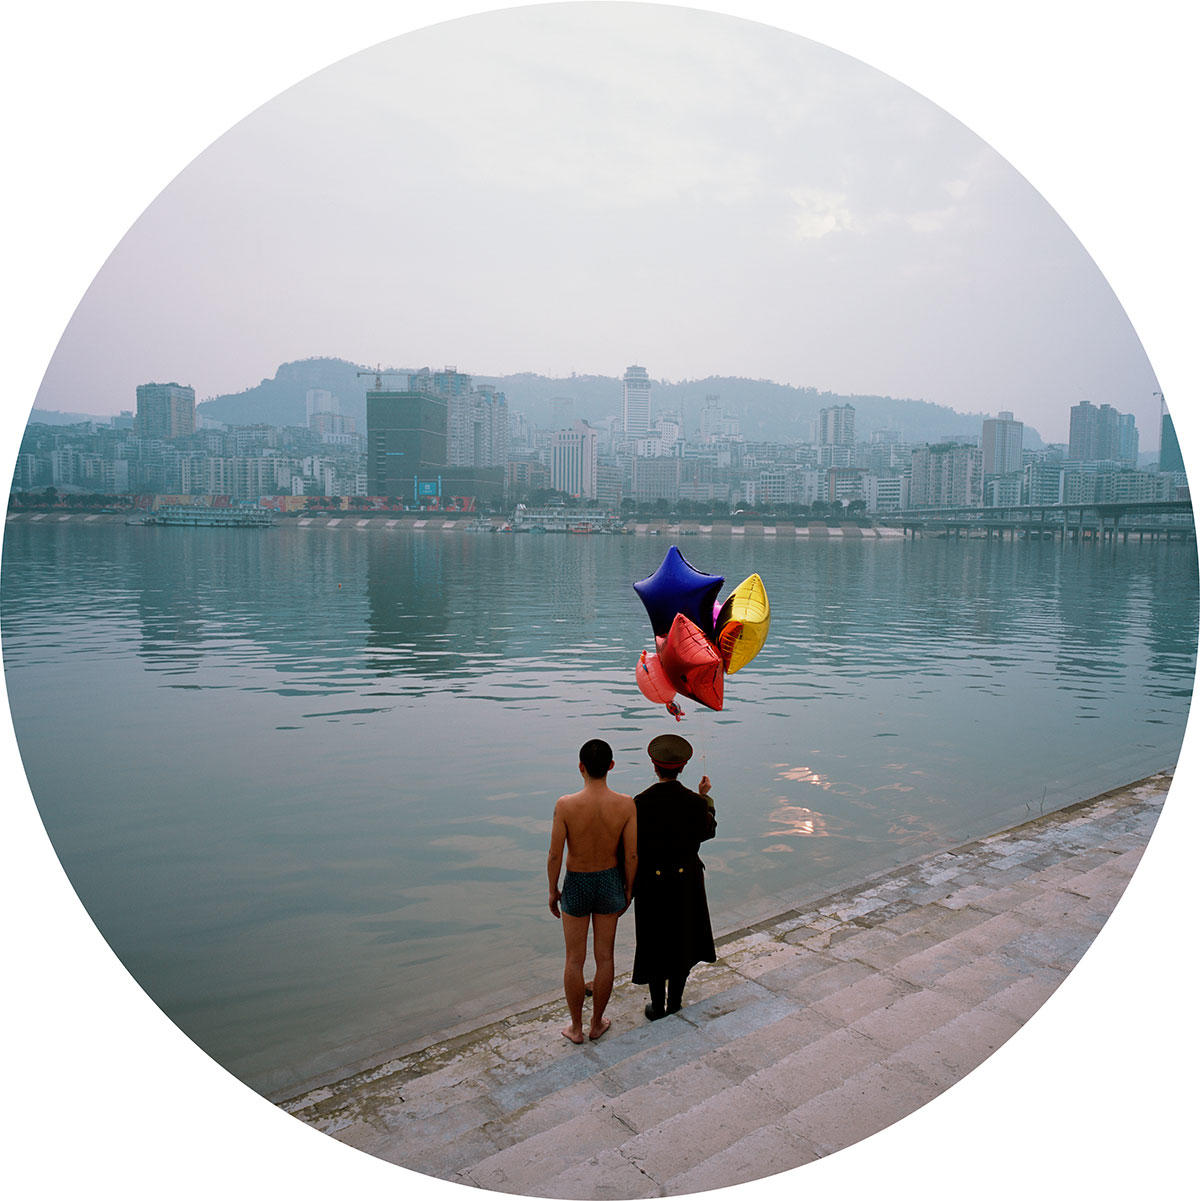 ©-Chen-Qiulin,-The-Empty-City-No.4,-2012.-Courtesy-of-A-Thousand-Plateaus-Art-Space,-Chengdu